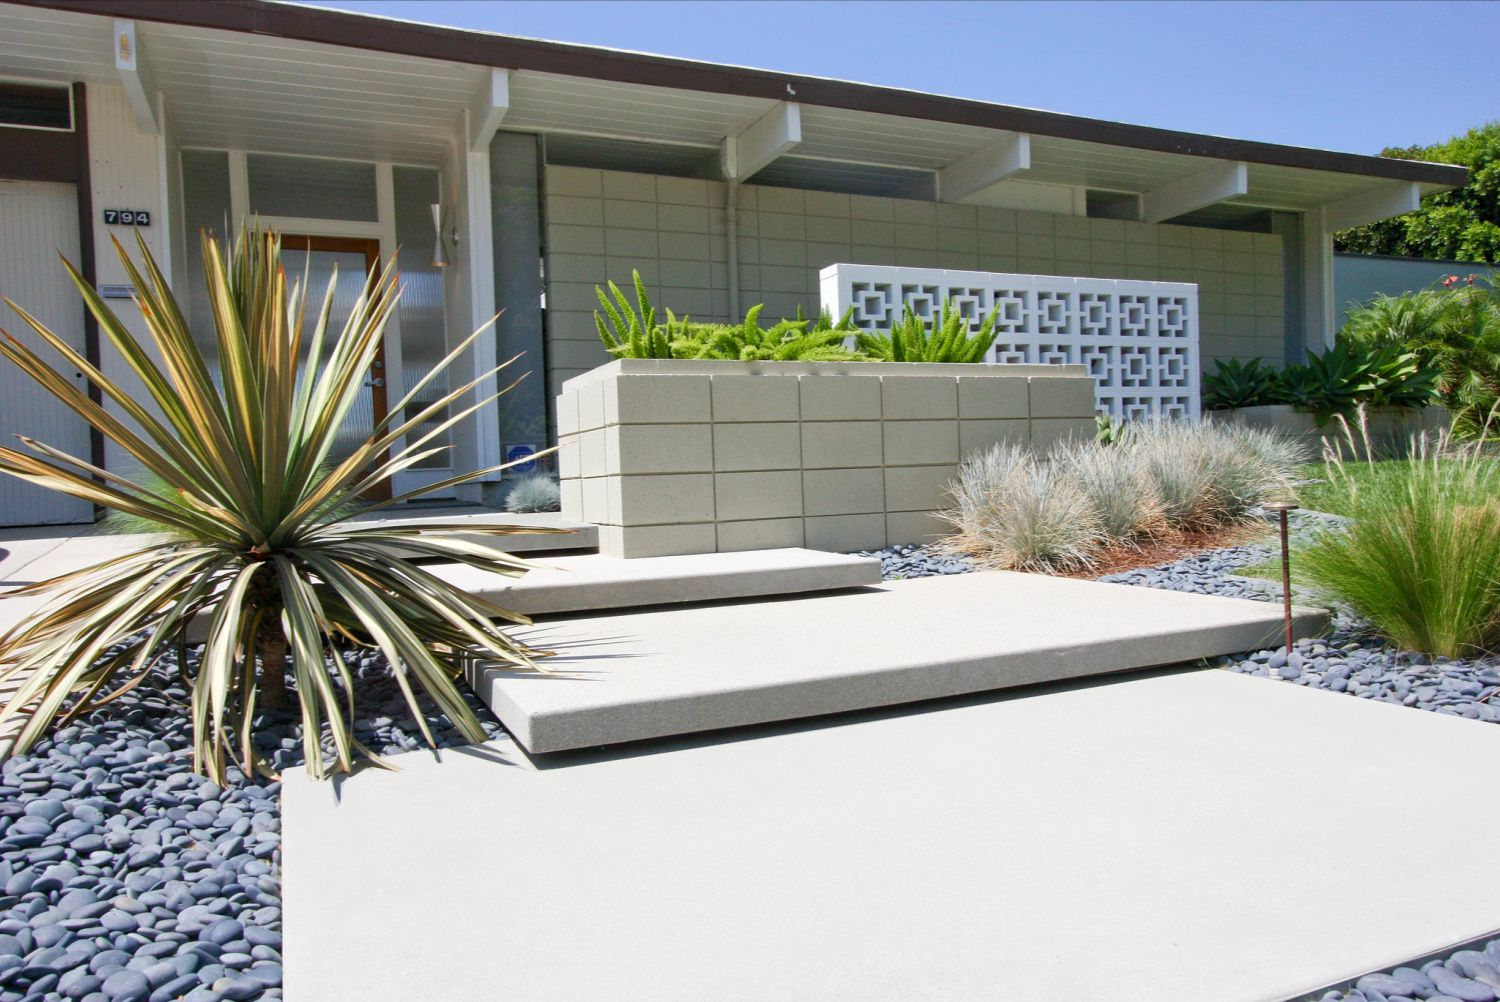 25 Garden Designs For Midcentury Modern Homes